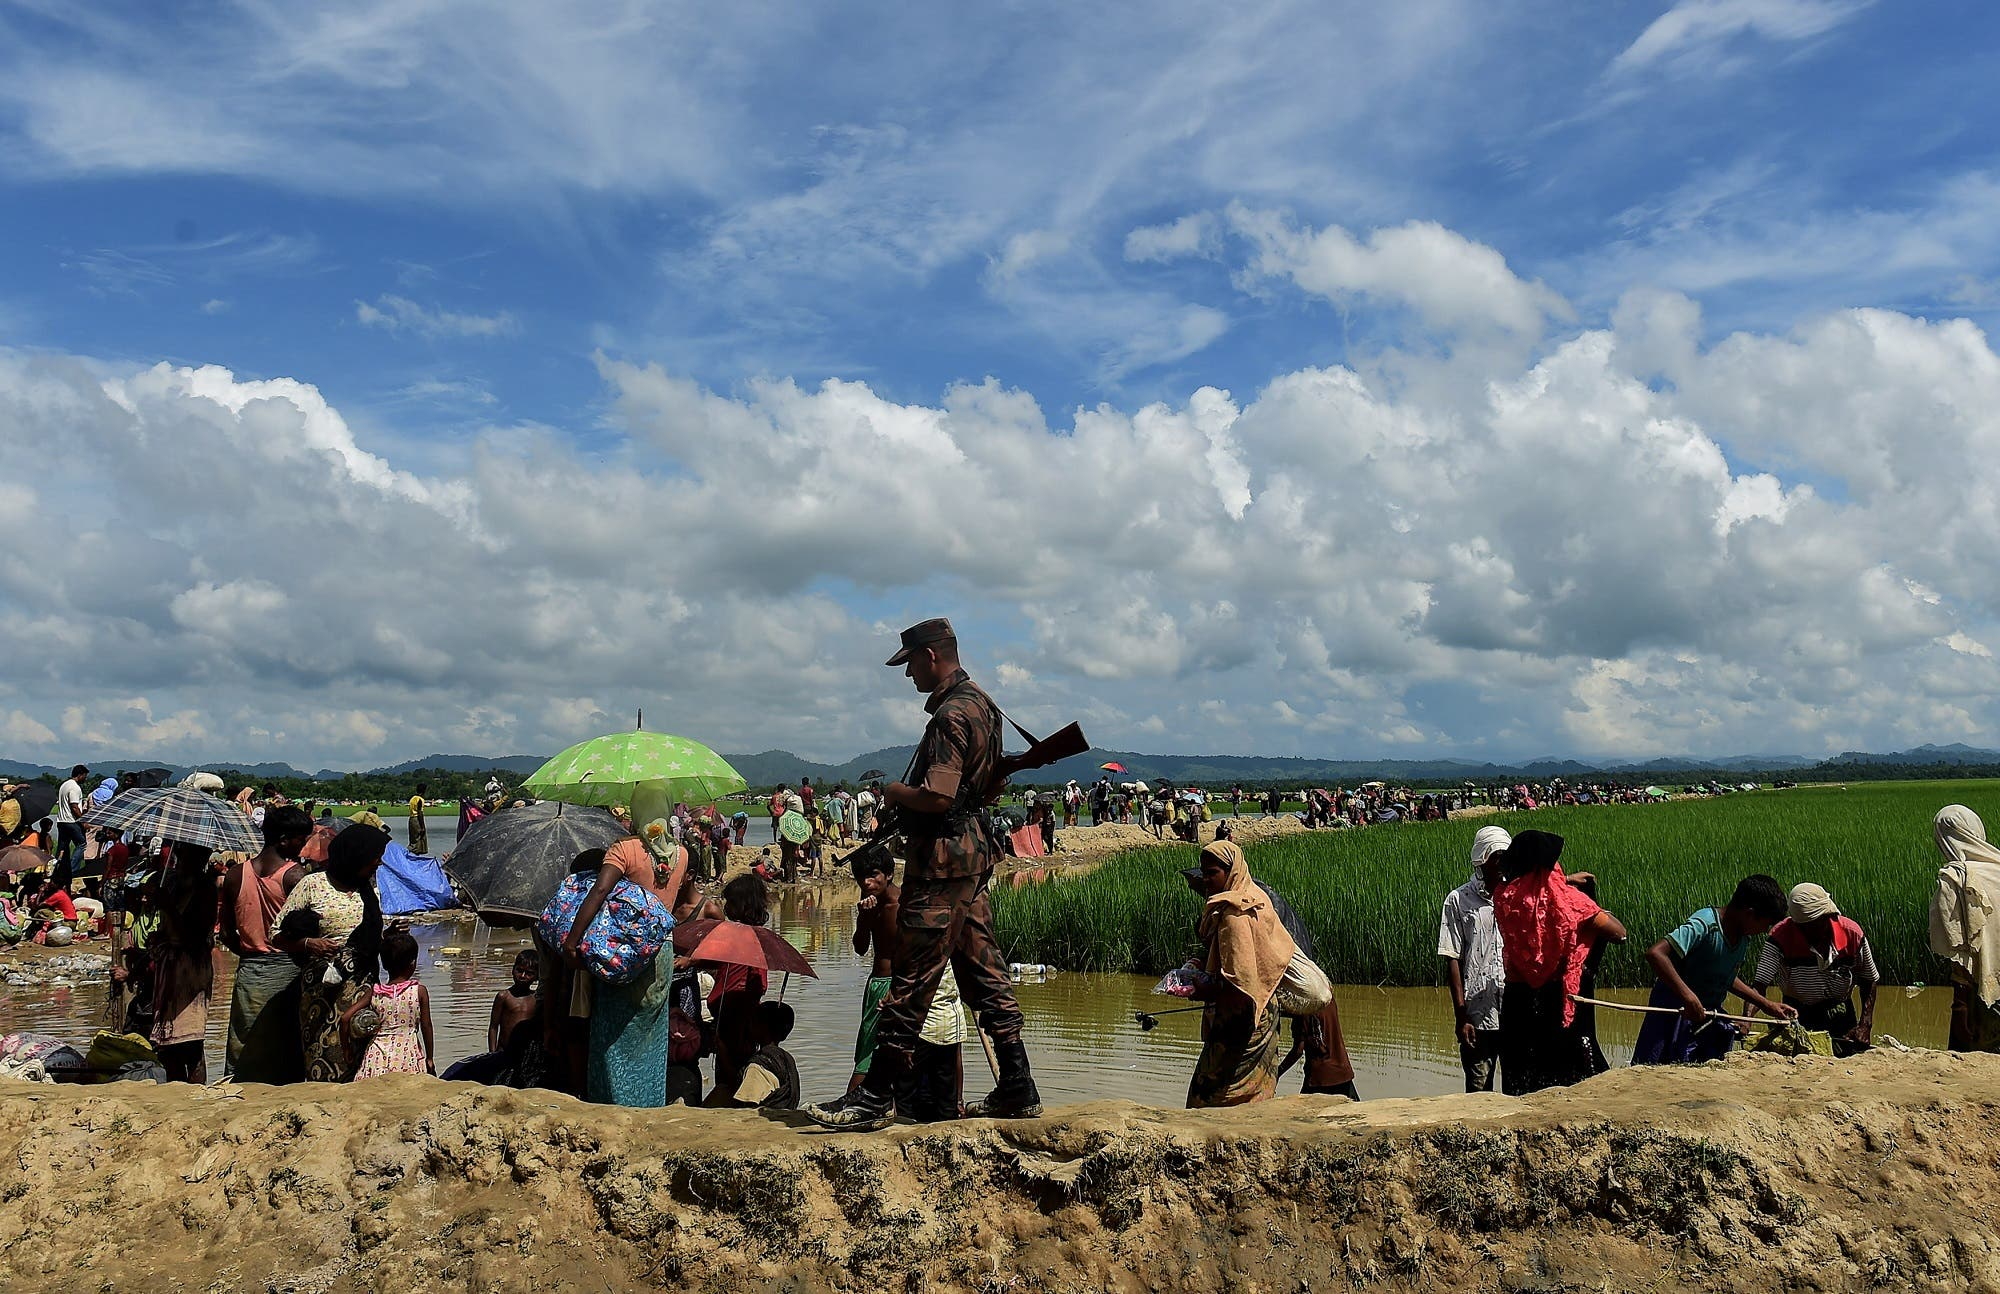 A Bangladesh border guard walks amongst Rohingya refugees walking in an area near no man's land on the Bangladesh side of the border with Myanmar after crossing the Naf River on October 17, 2017. (AFP)